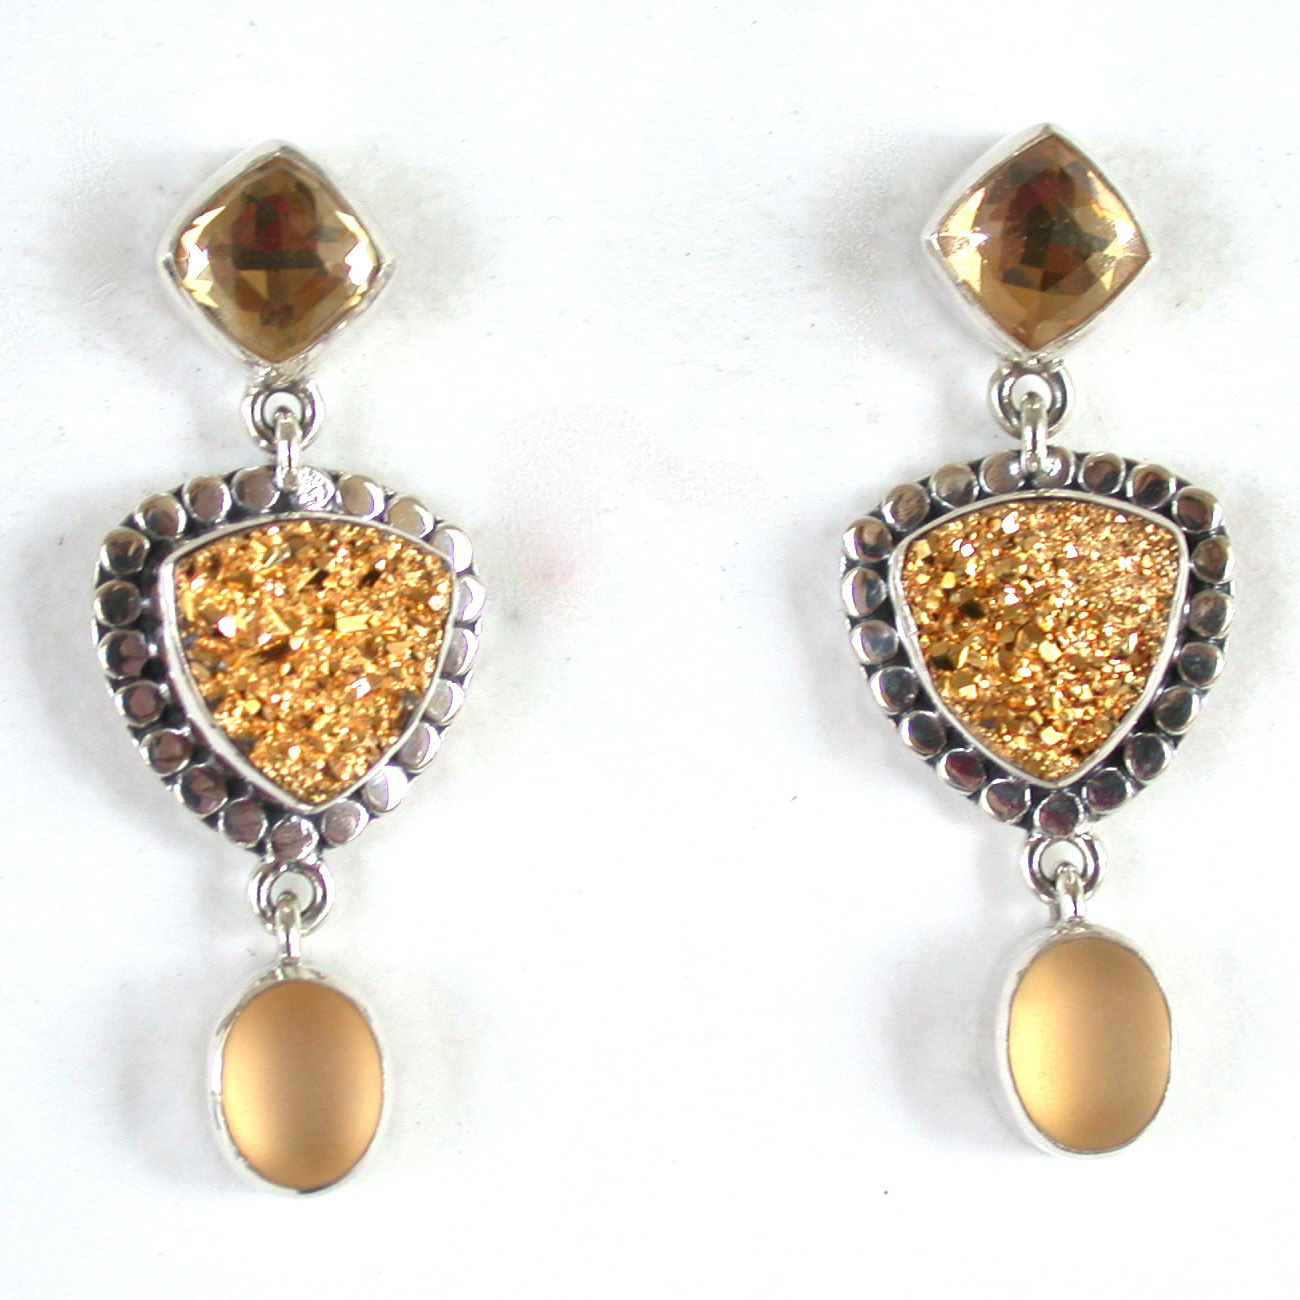 Amy Kahn Russell Online Trunk Show: Quartz & Gold-Plated Drusy Post Earrings | Rendezvous Gallery